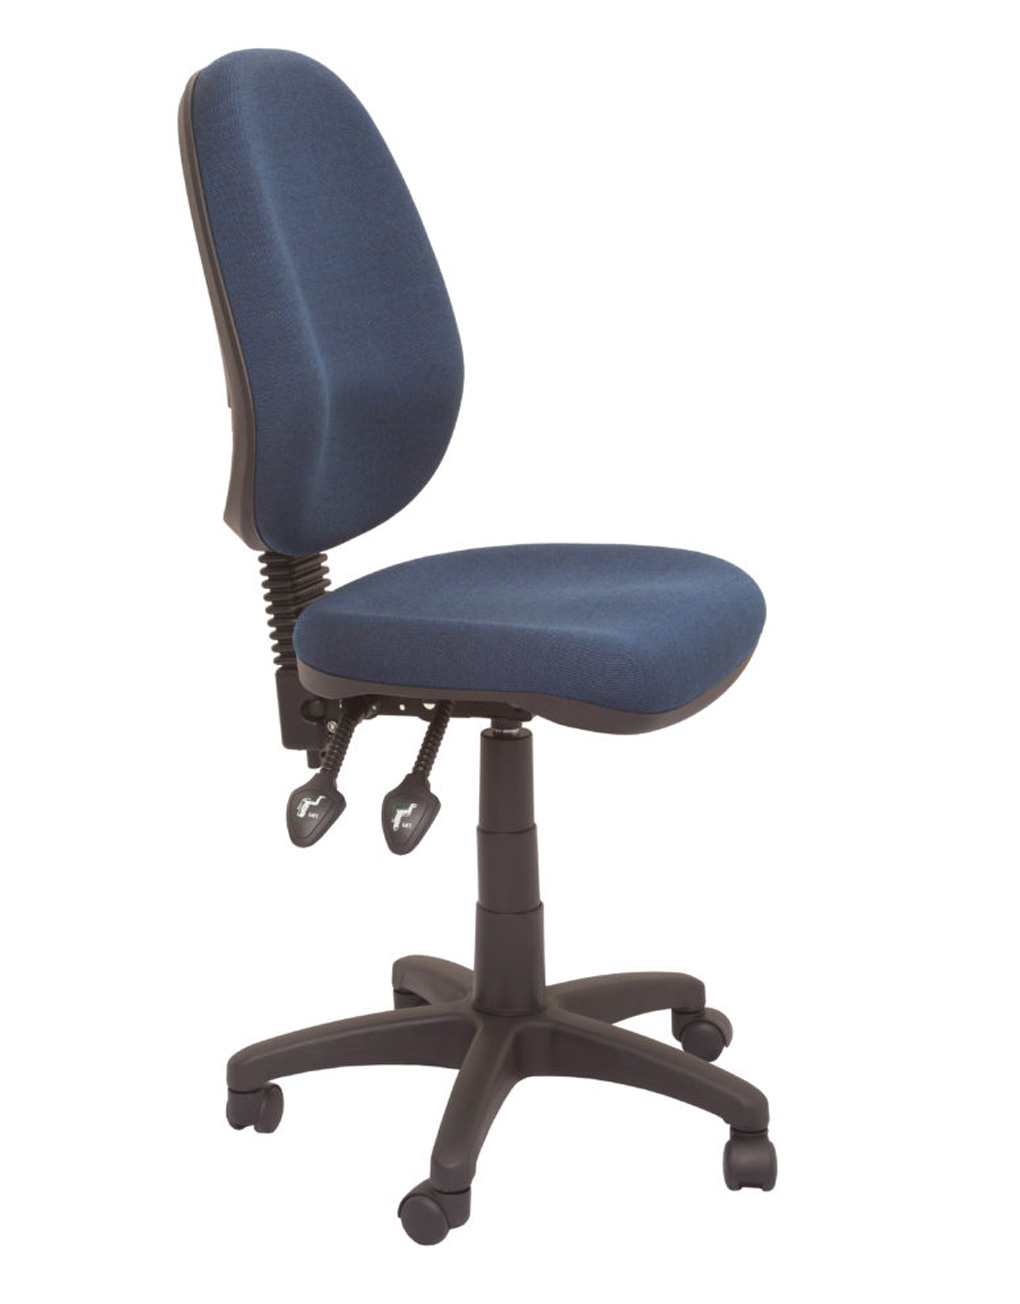 View High Back Ergonomic Office Chair 2 Lever